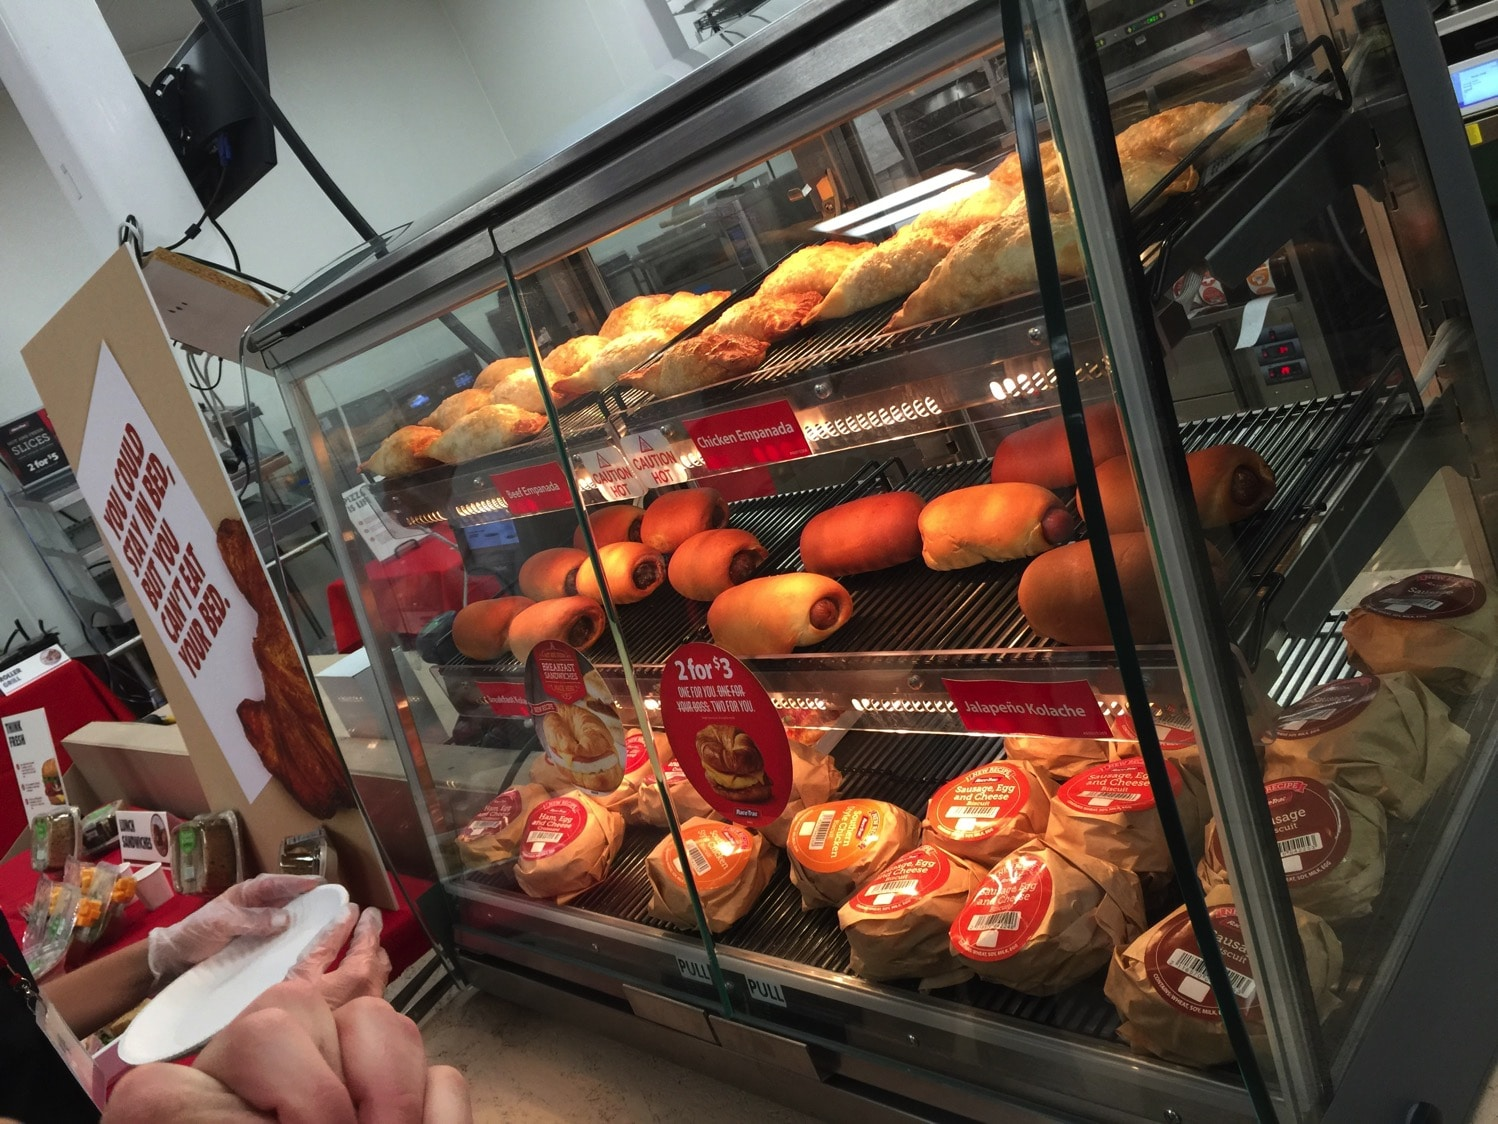 kolaches and hot items